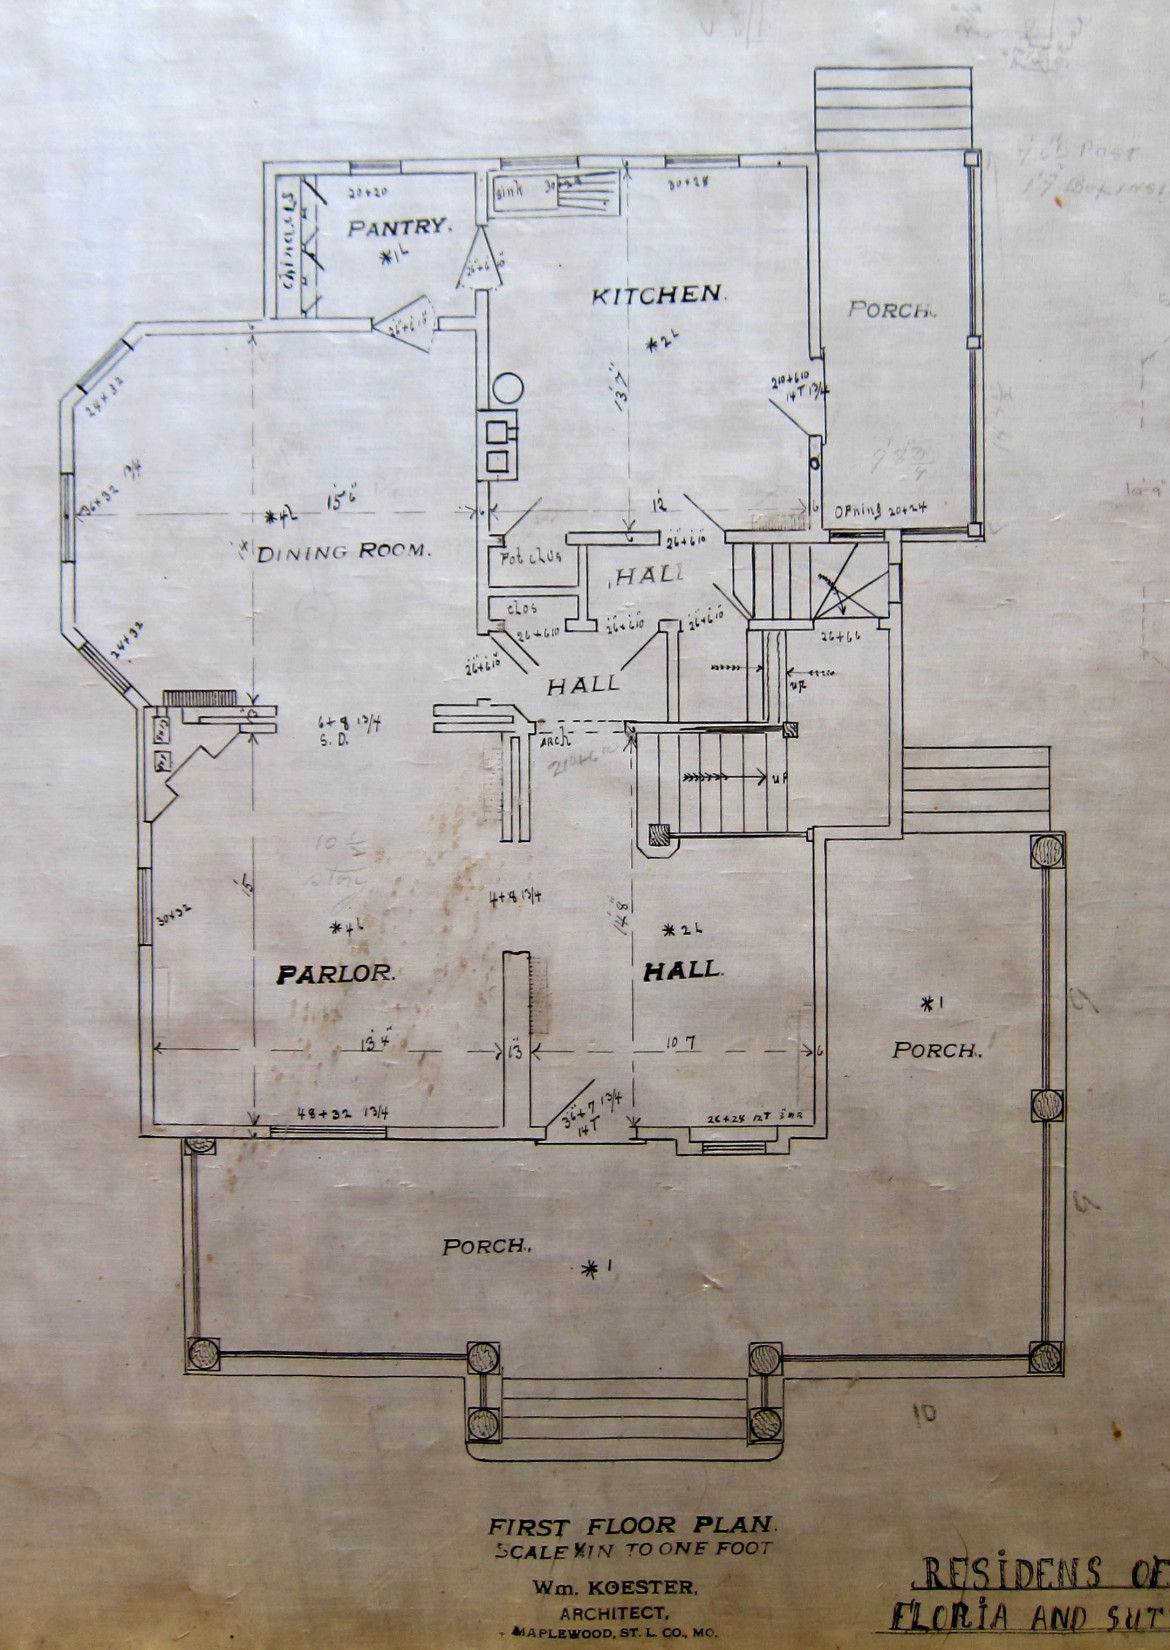 The first floor plan of Koester's home at 7395 Flora.  From the collection of Jim and Beth Abeln.